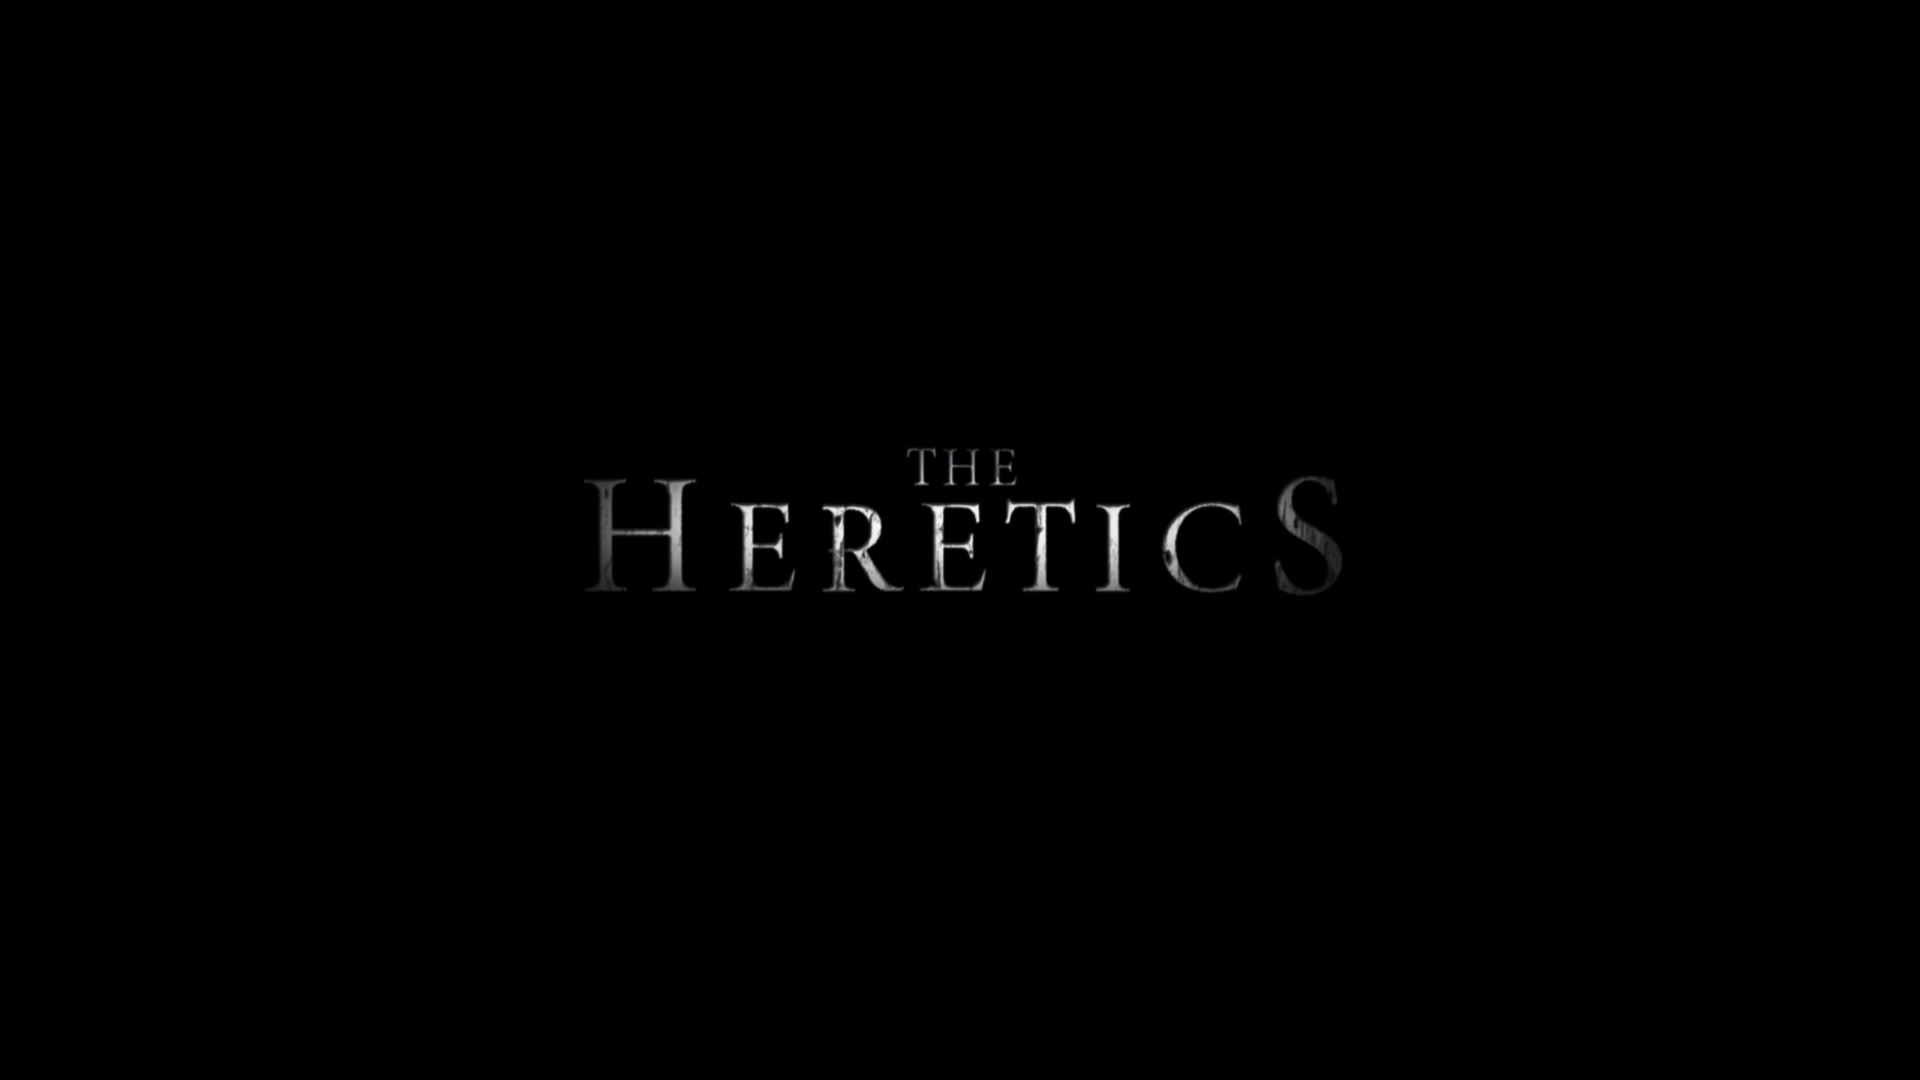 The Heretics Trailer